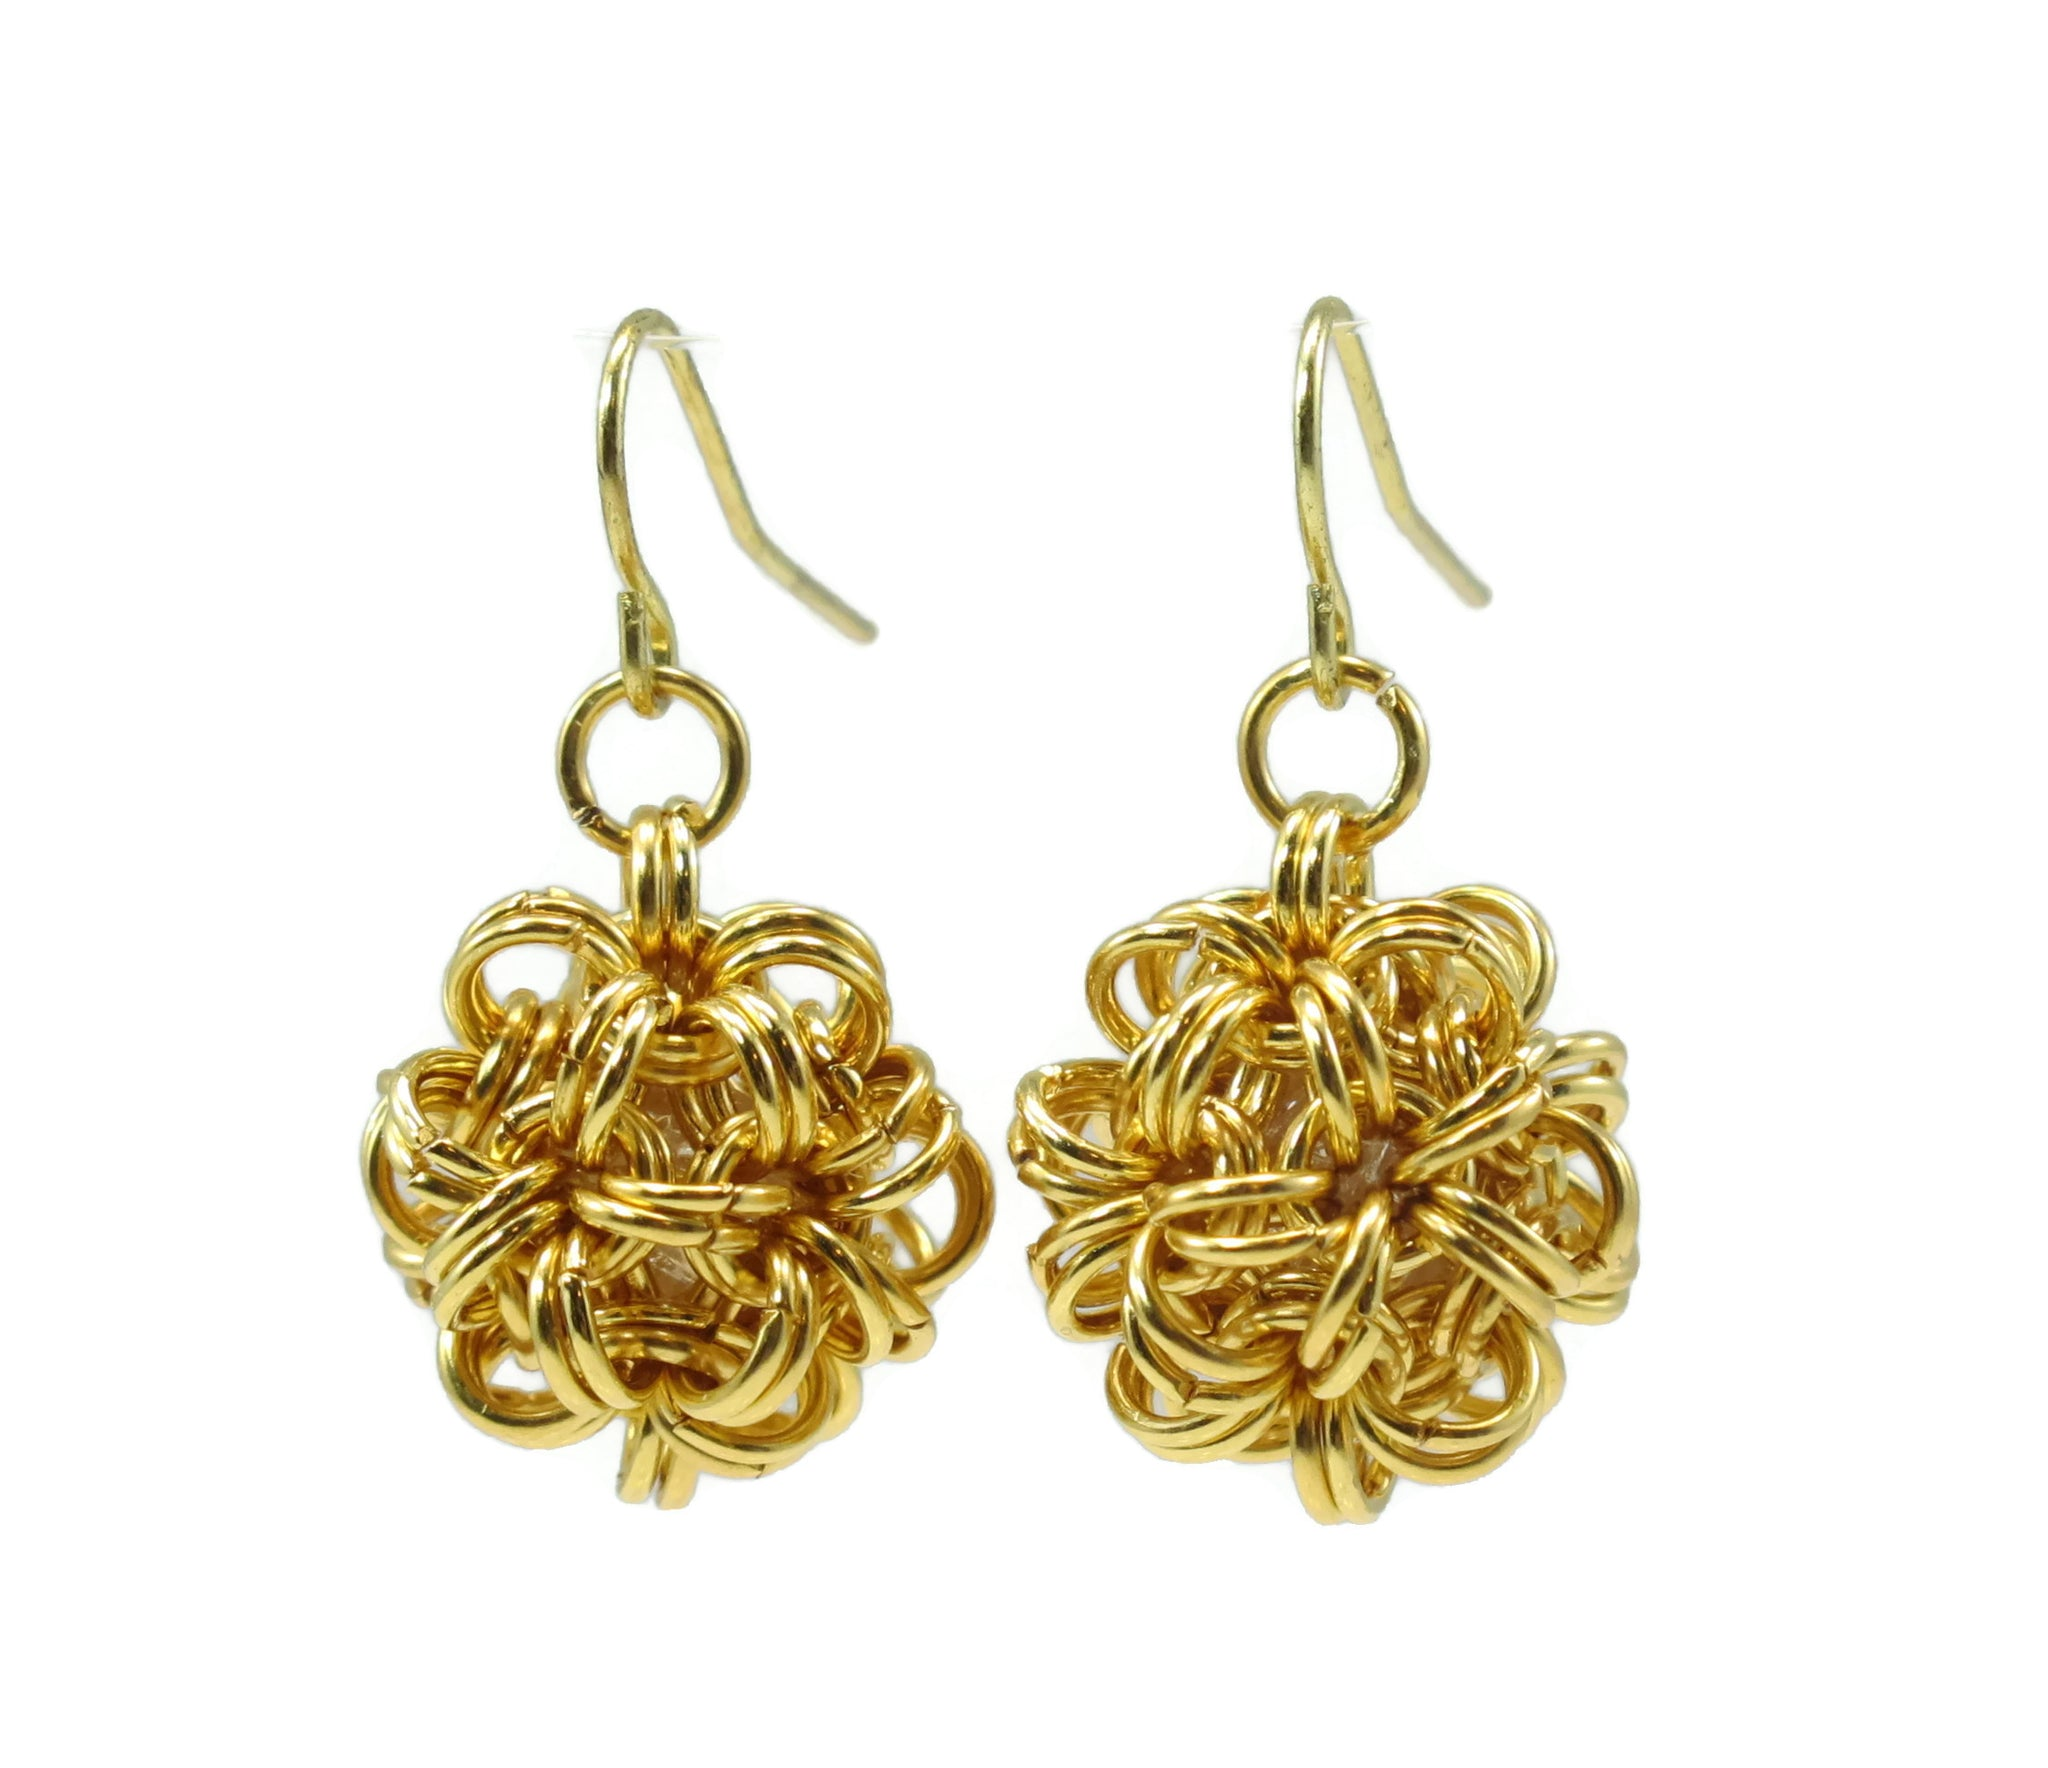 14kt gold fill chainmaille dodecahedron earrings geometric earrings chainmail jewelry chainmaille dodecahedron jewelry geometric earrings